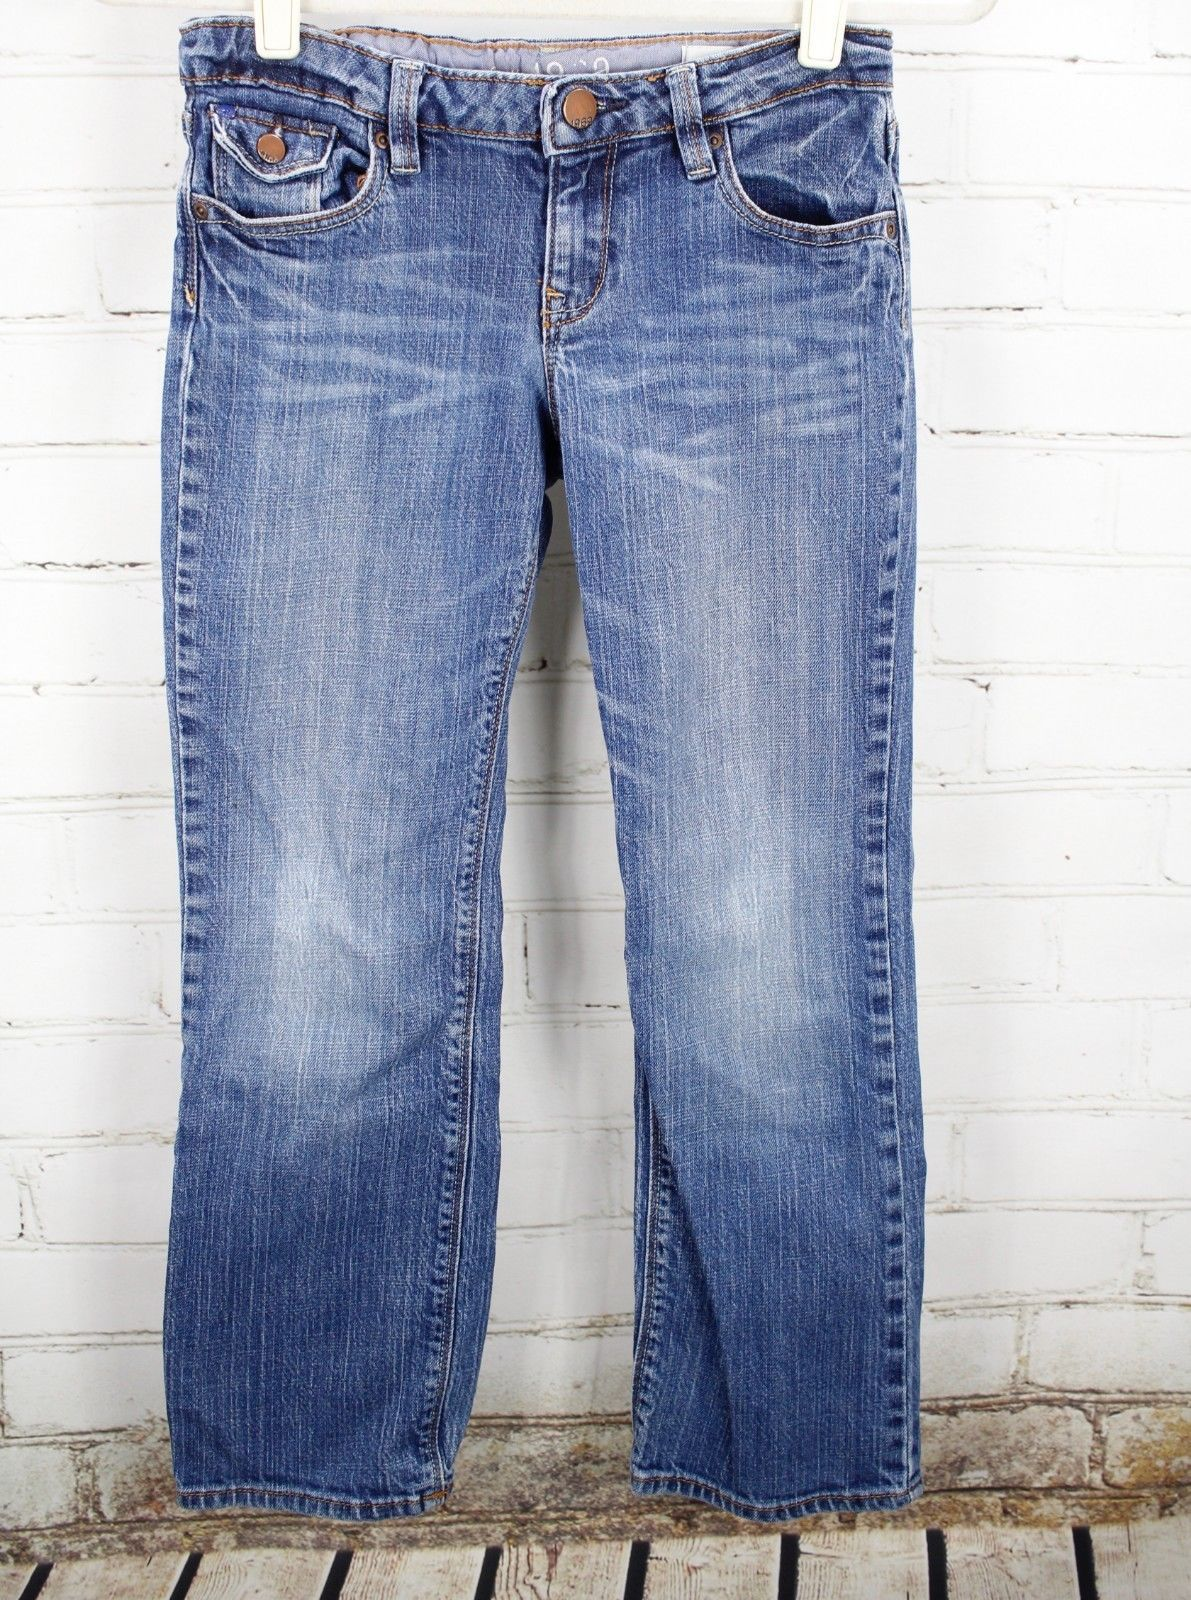 Gap Kids Straight Leg Jeans 1969 Boys Size 10 Plus Medium Wash Cotton Stretch